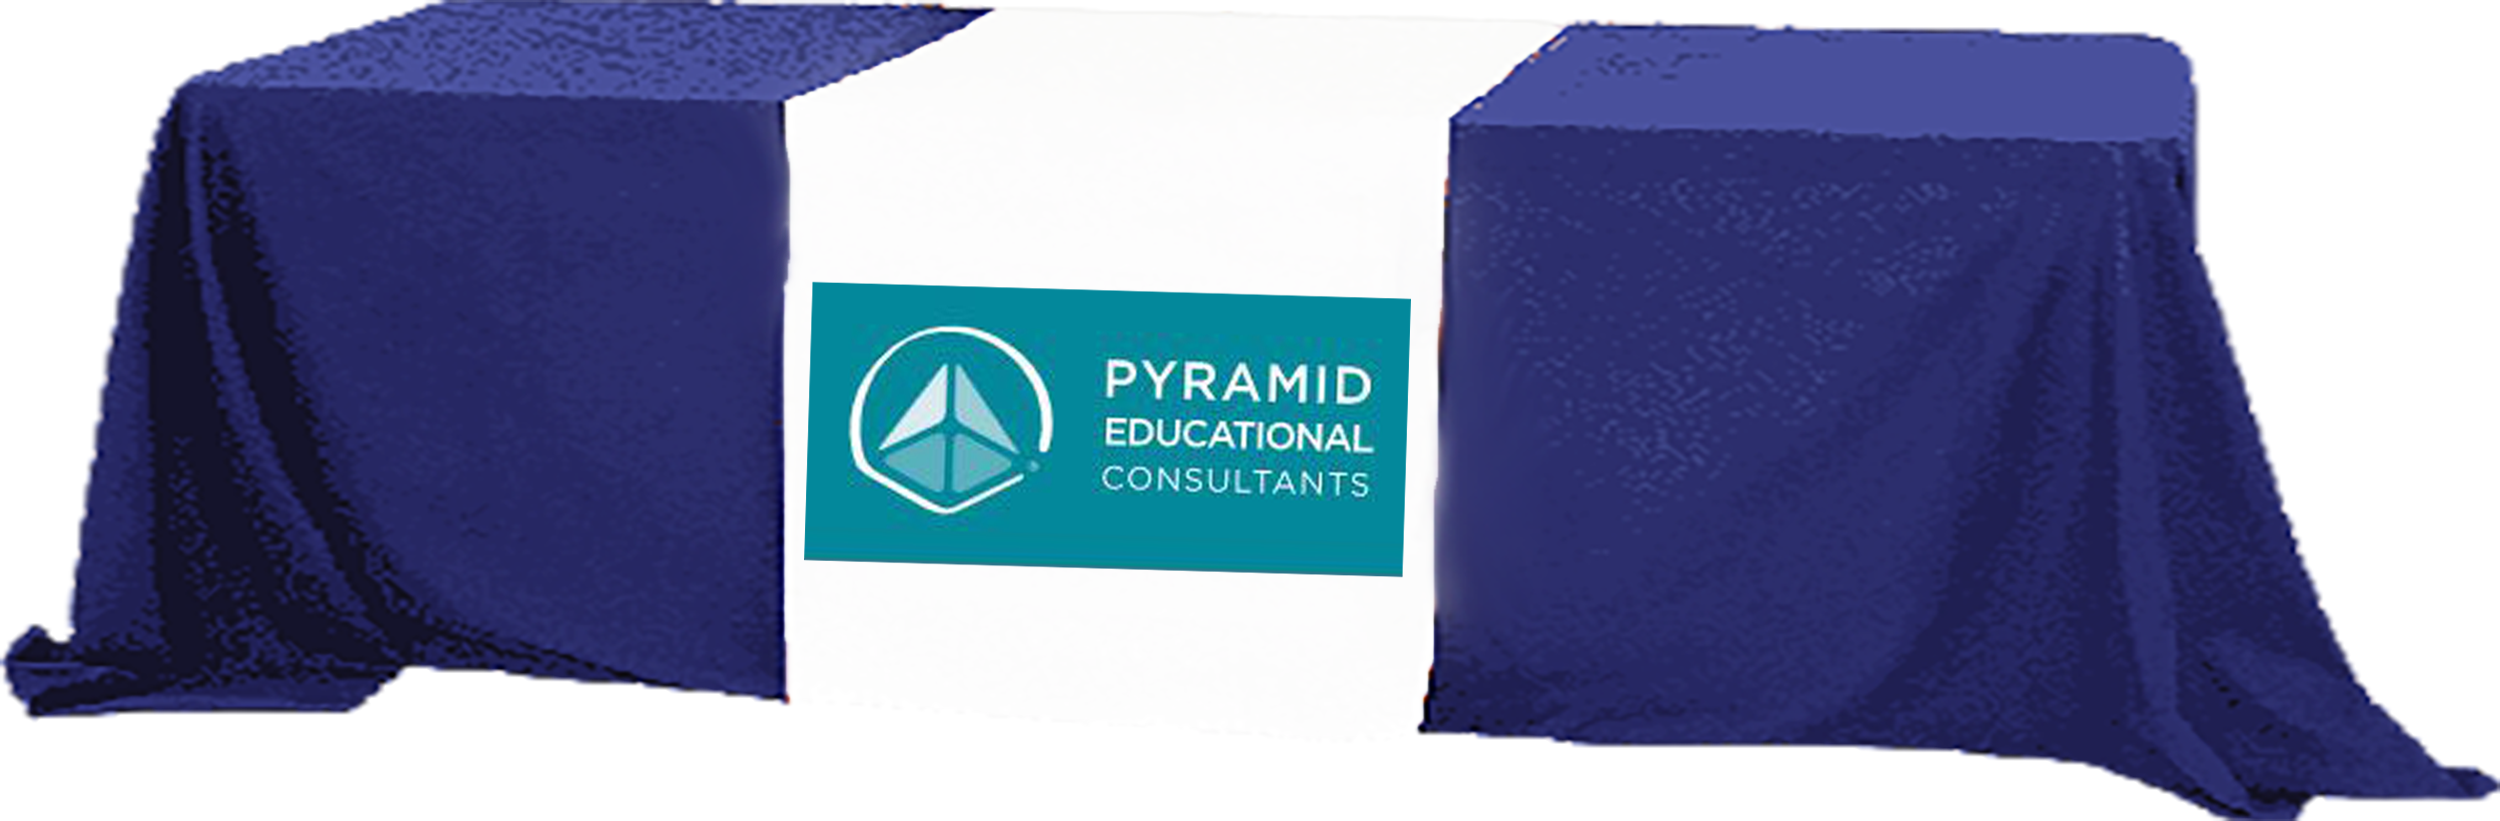 Pyramid logo on a table cover over a table image